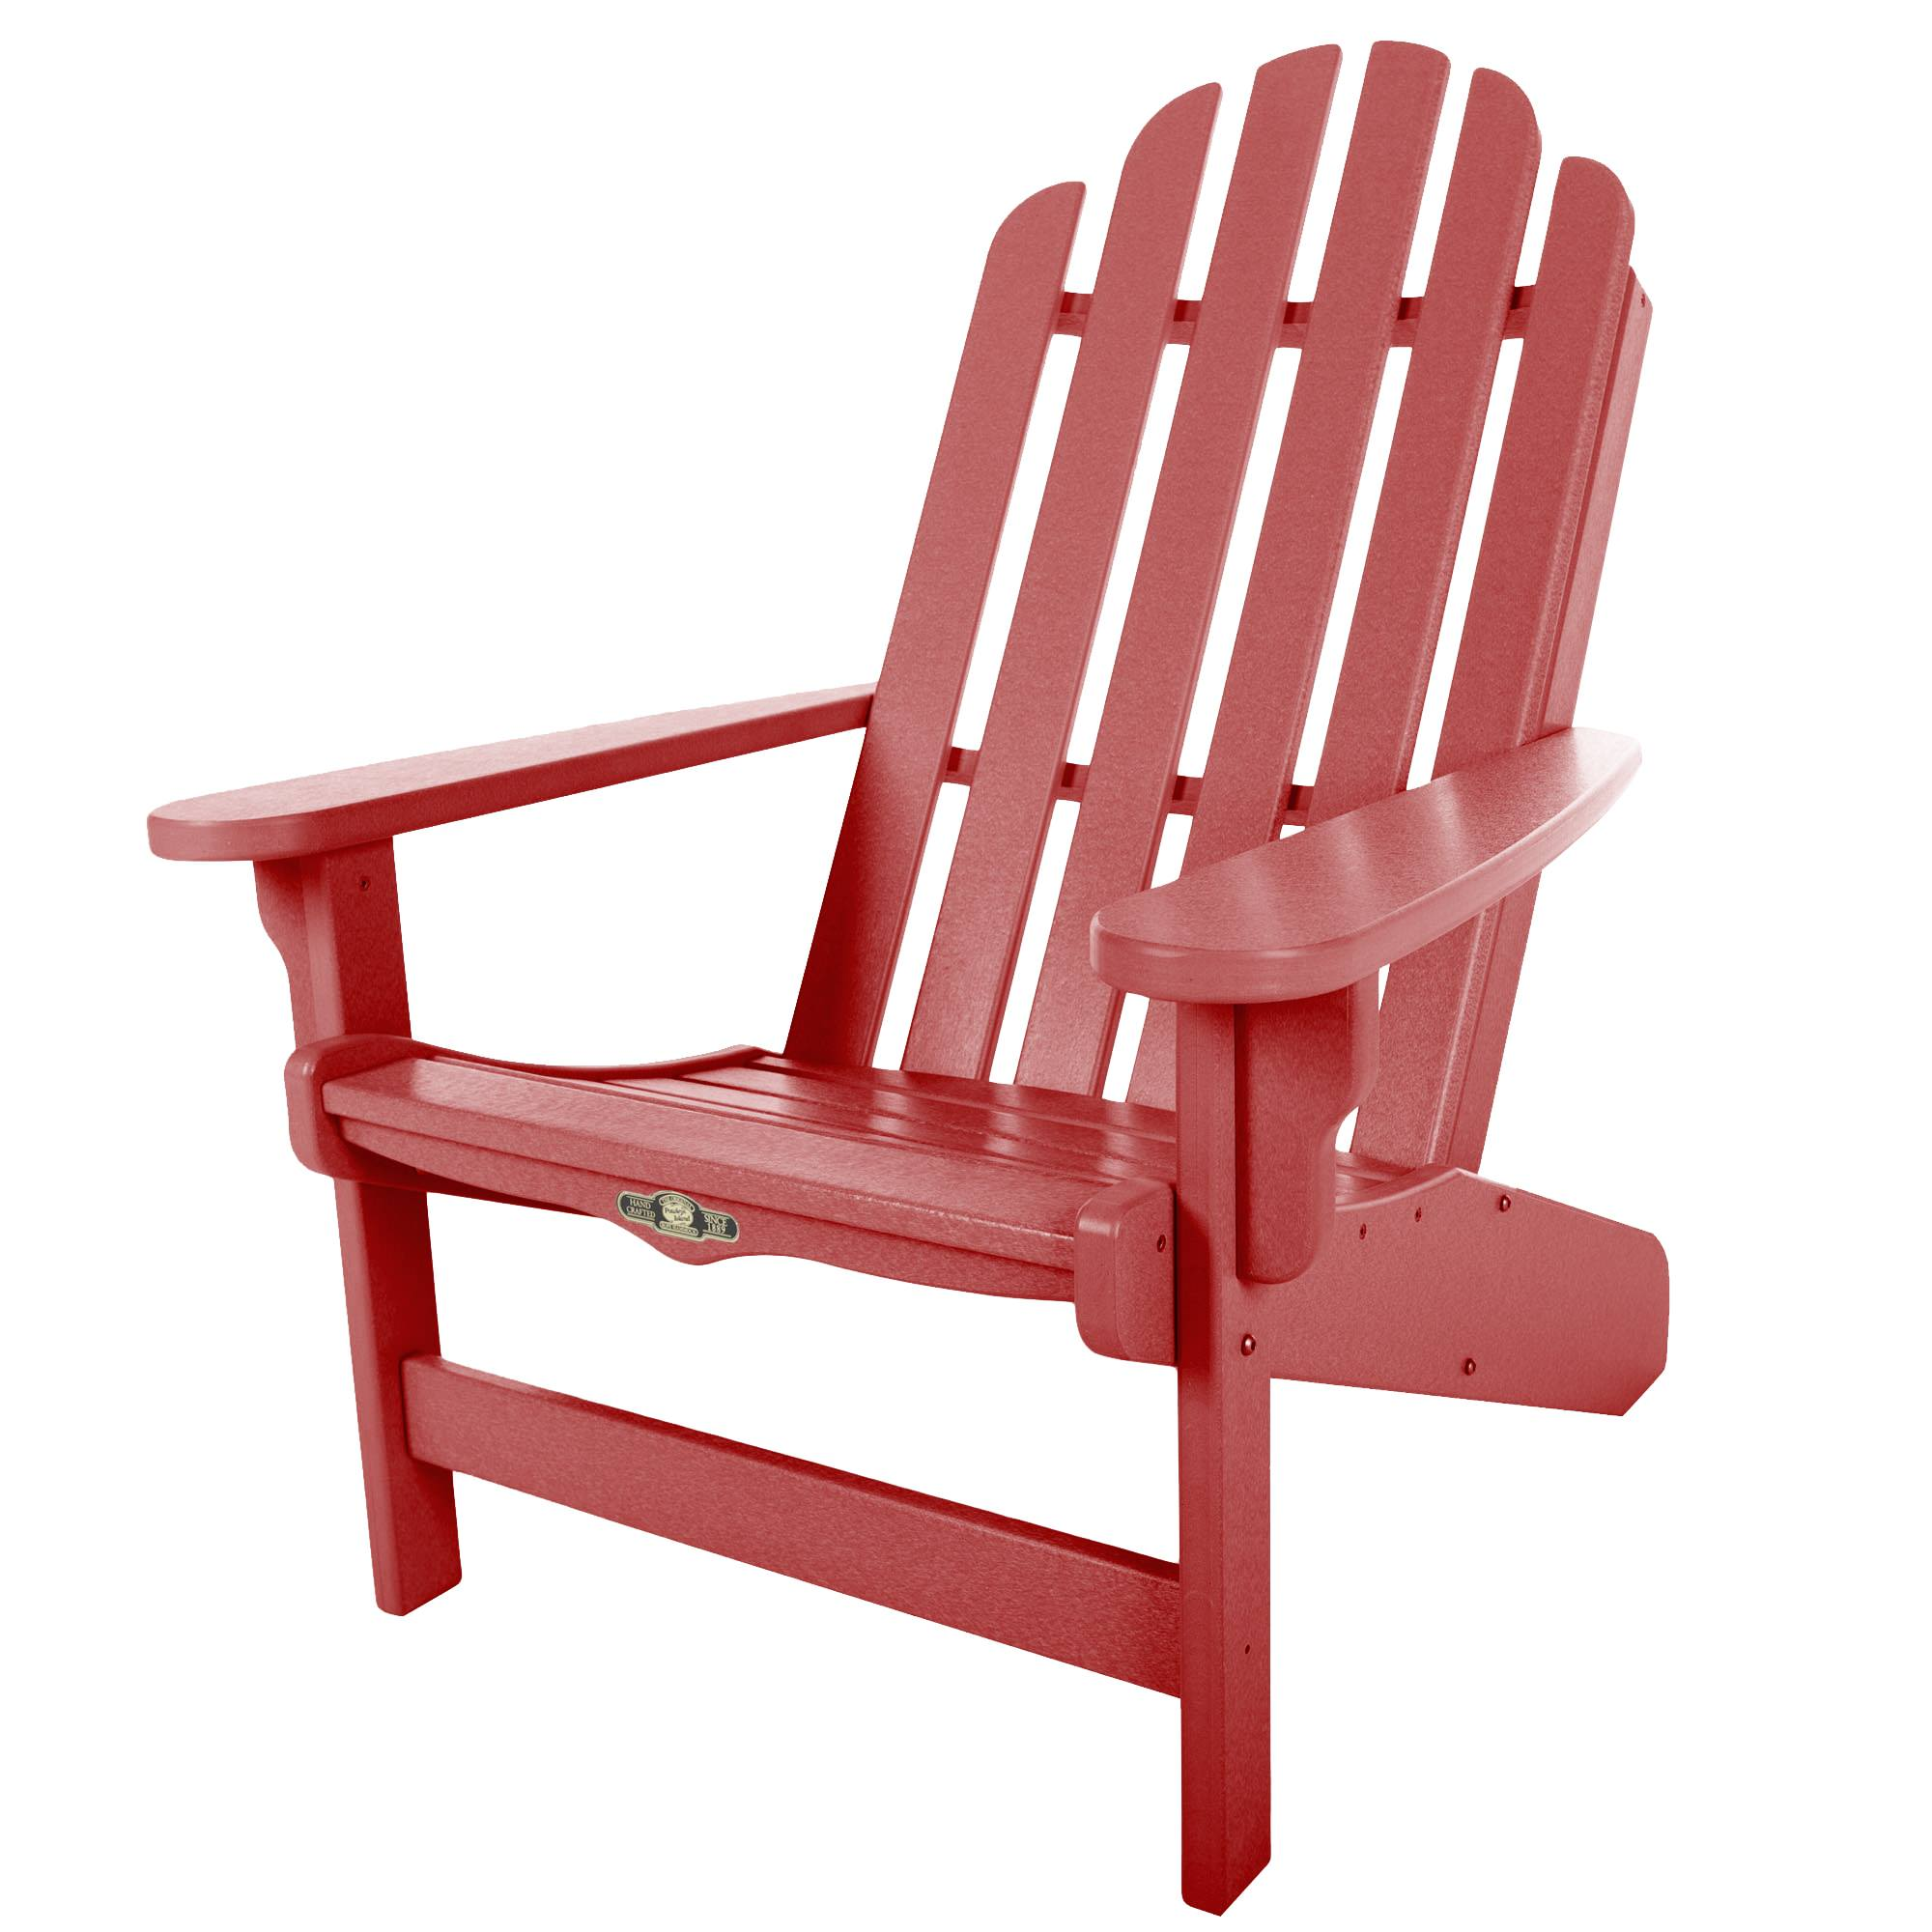 p furniture adirondack shipping today chair lifetime sale plastic polystyrene free model patio